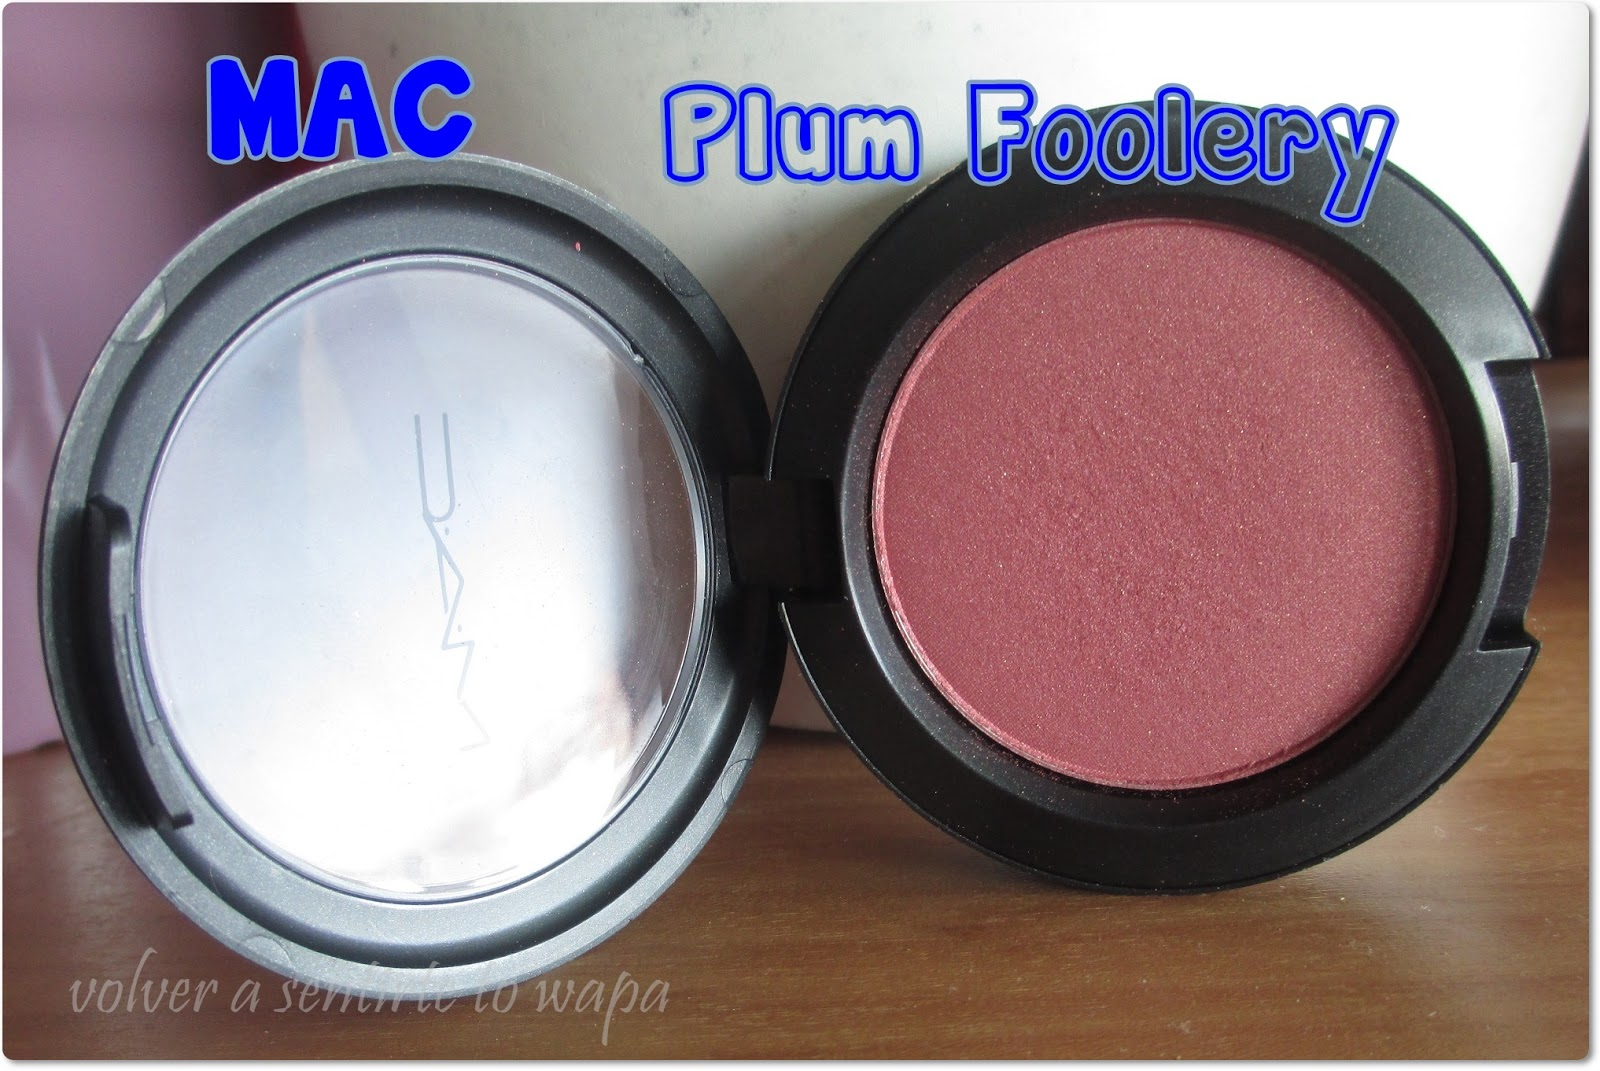 MAC Plum Foolery - review & swacthes